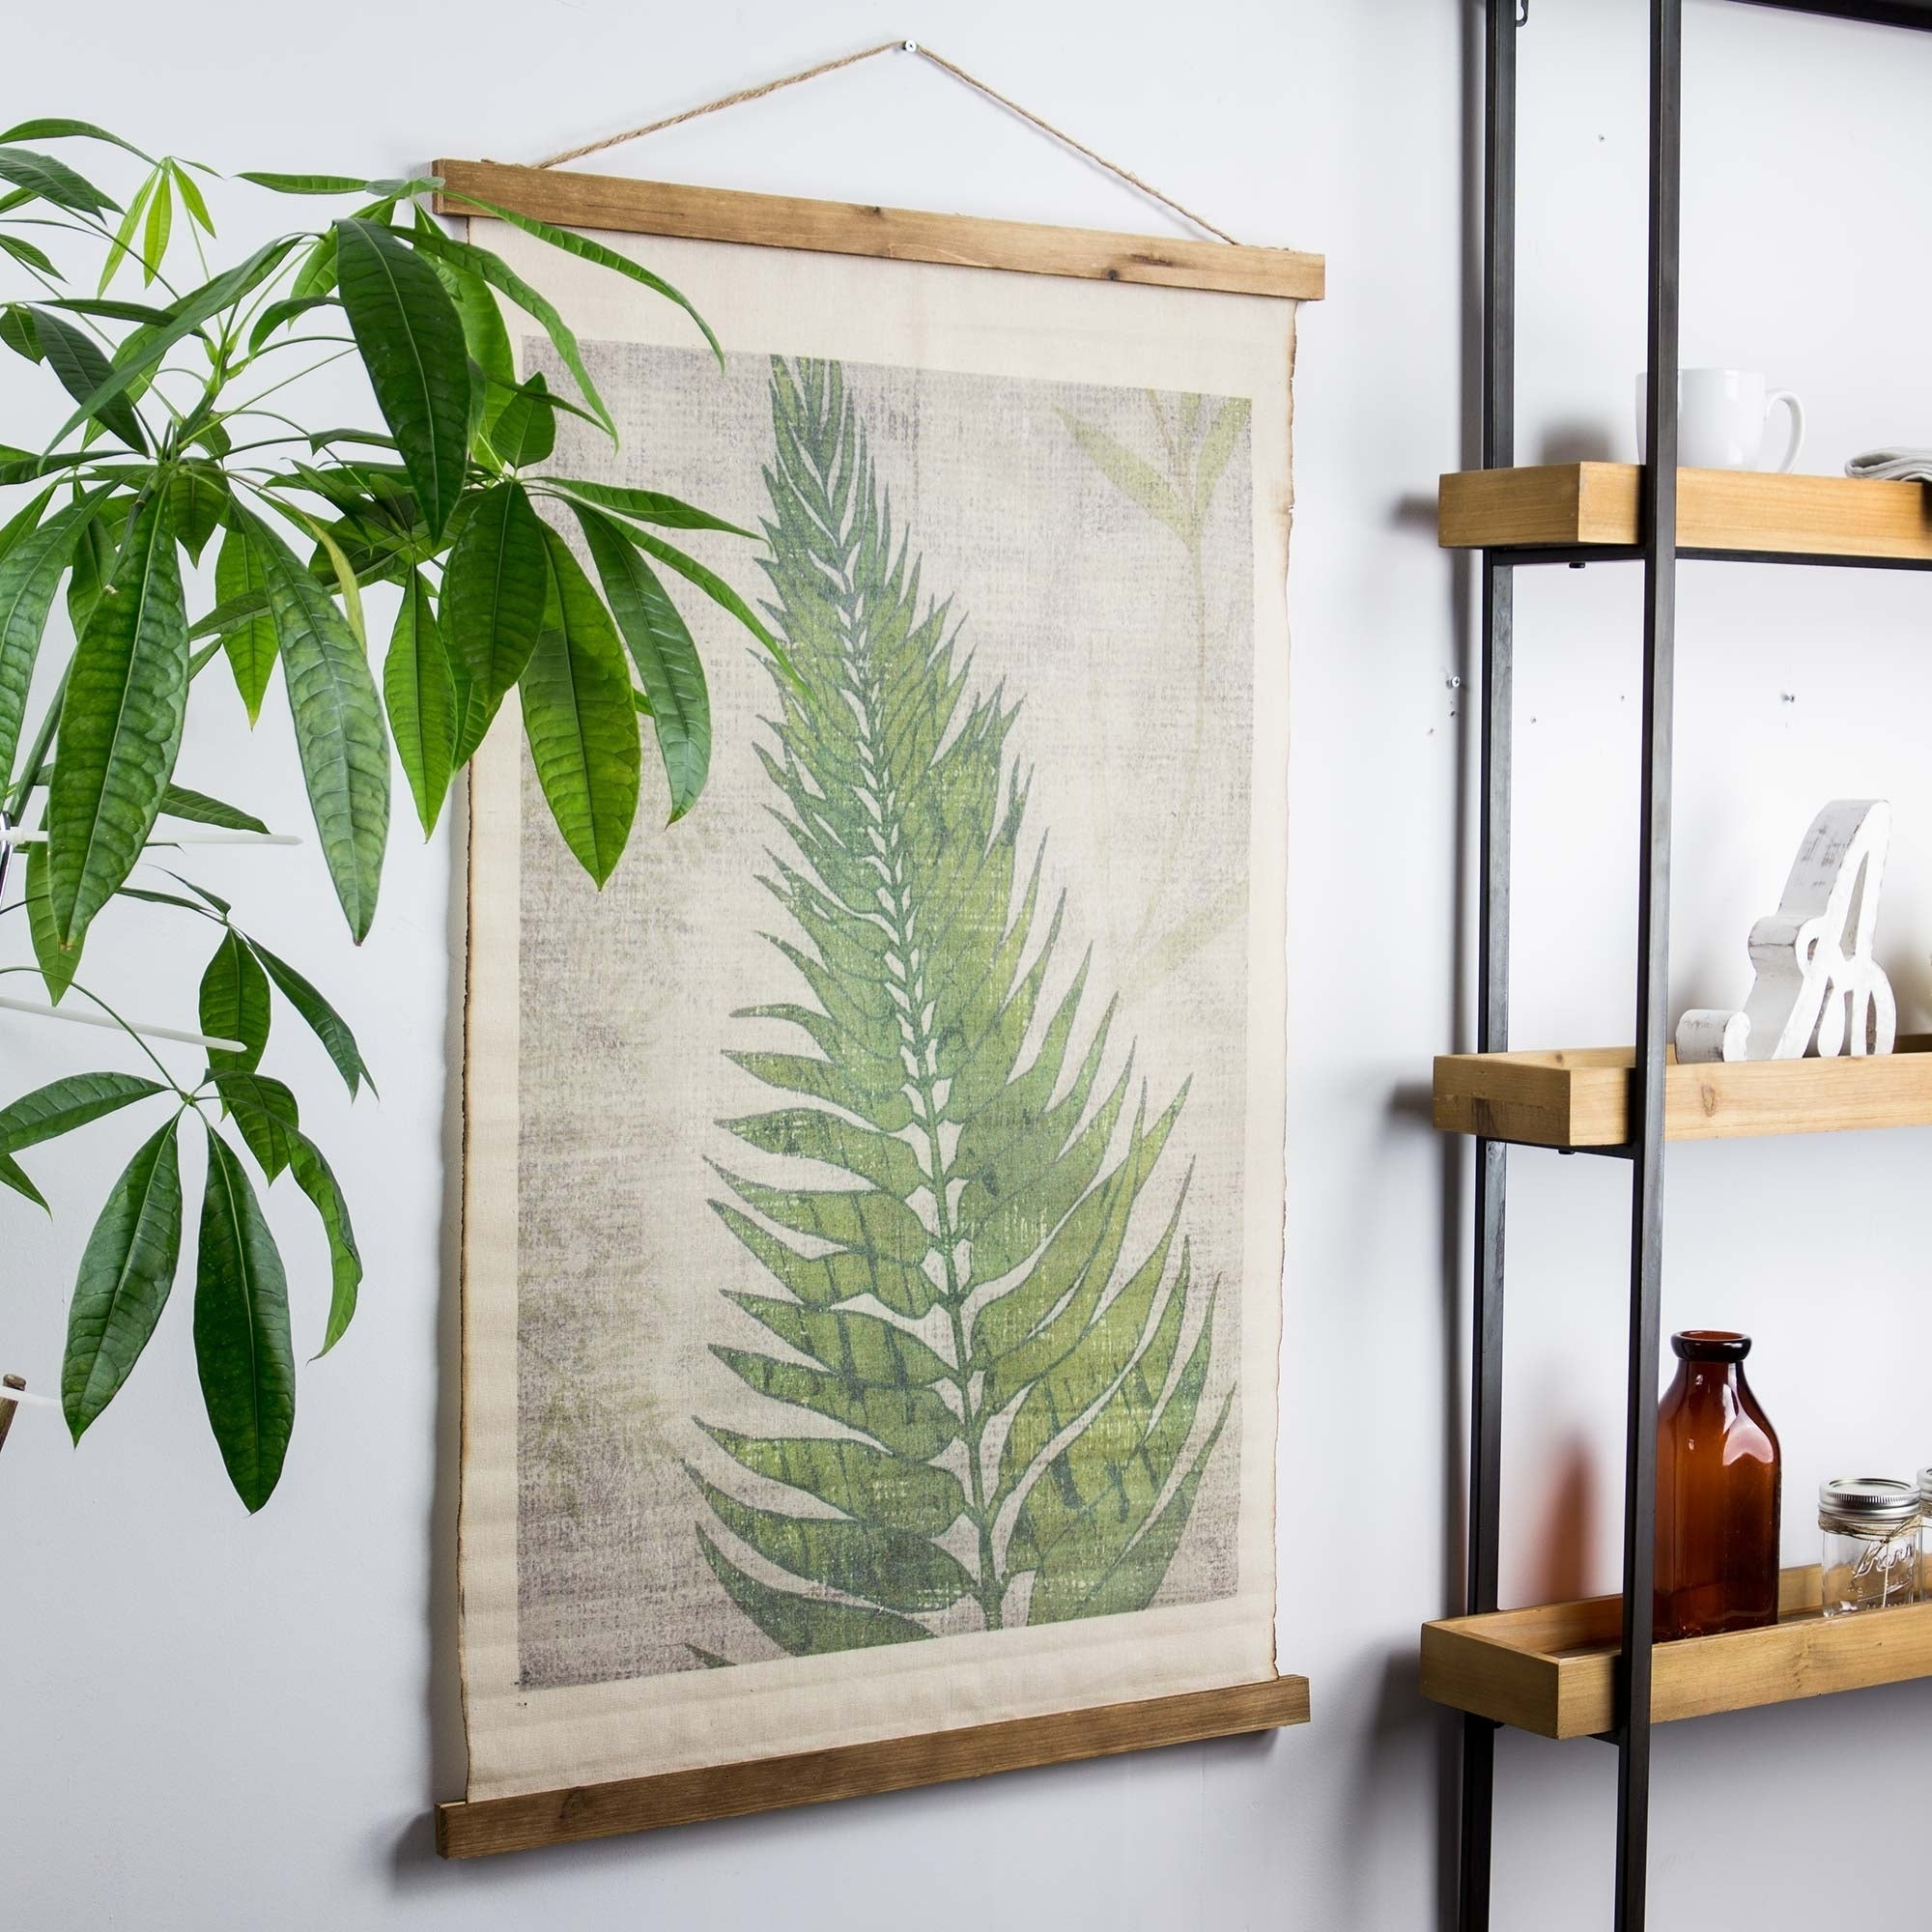 Scroll Leaf Wall Decor In Current Shop American Art Decor Fern Leaf Wall Scroll Tapestry With Rope (Gallery 10 of 20)